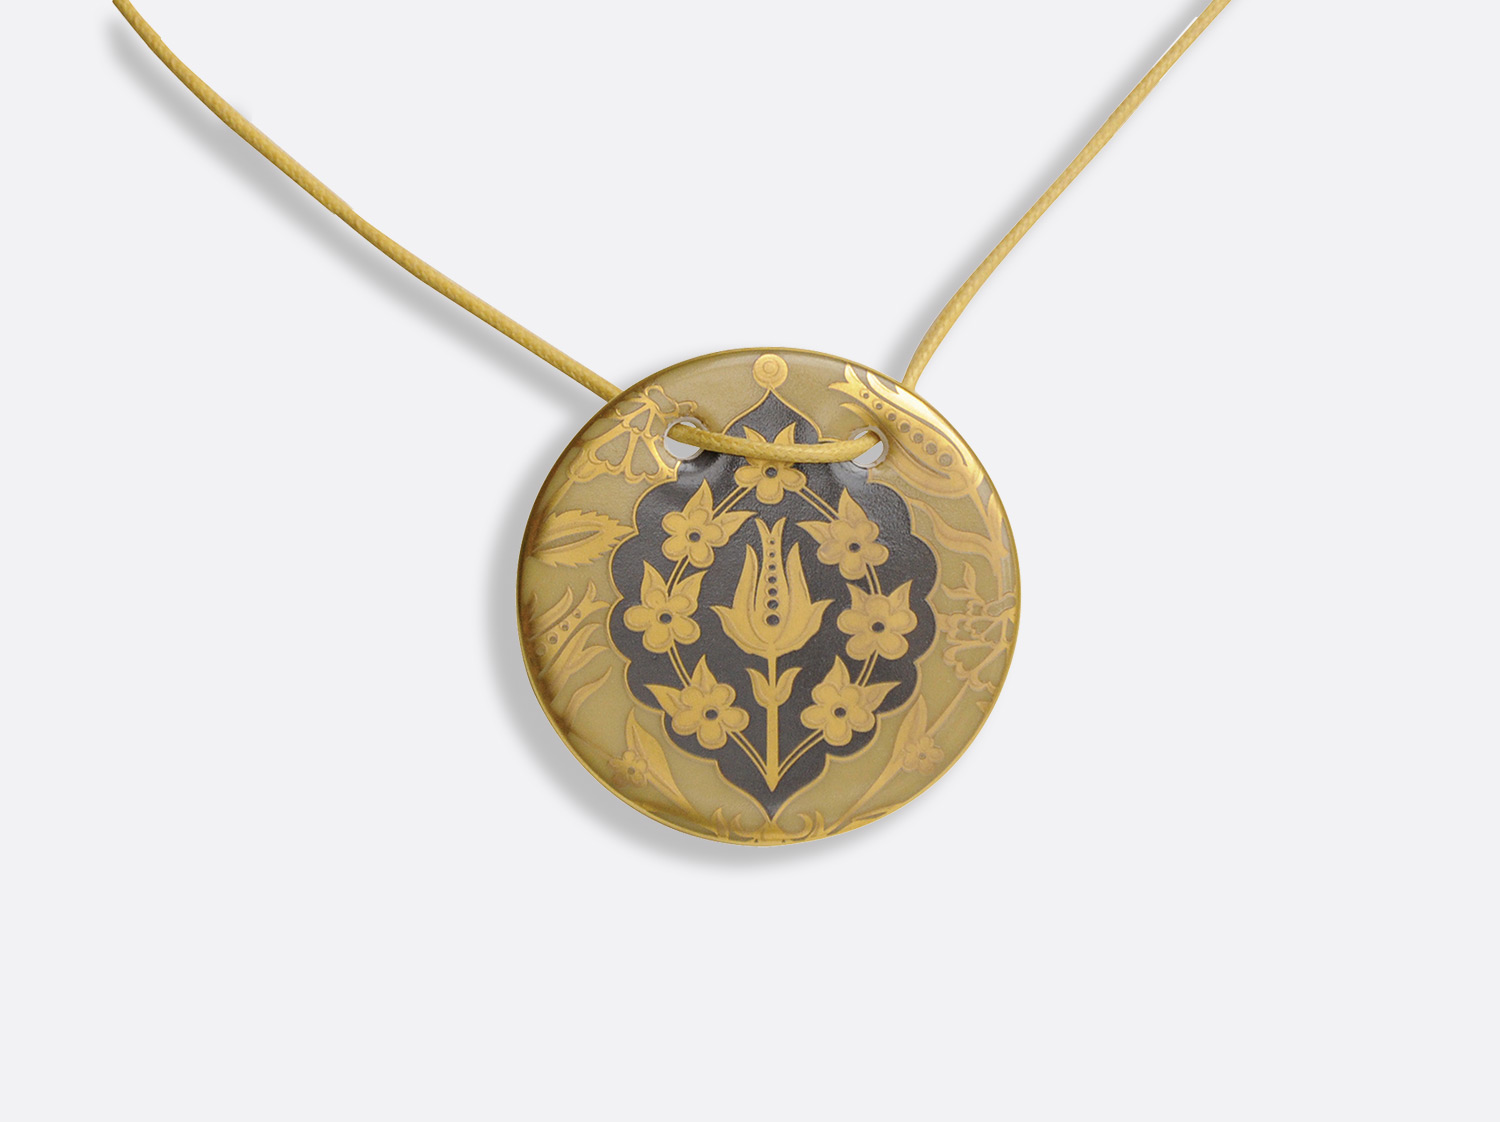 China Pendentif Gong D. 48 mm of the collection Sultane Ocre | Bernardaud